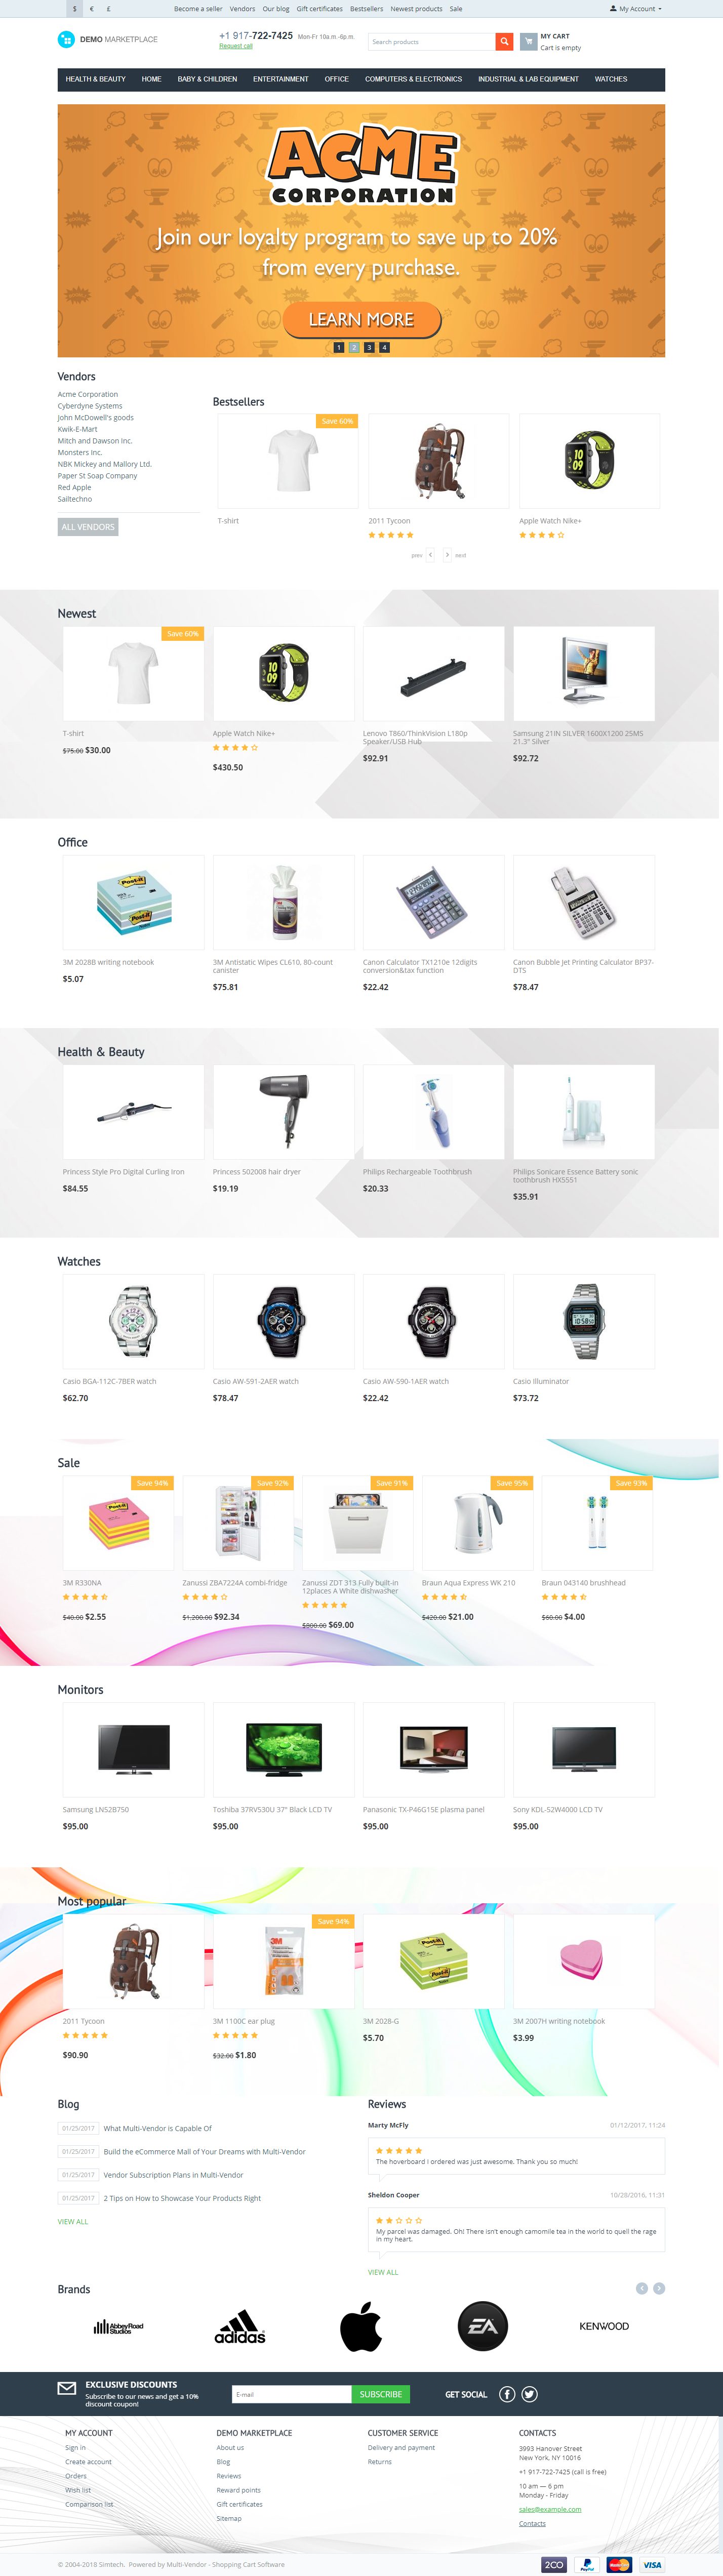 parallax-effect-homepage.png?15206005442